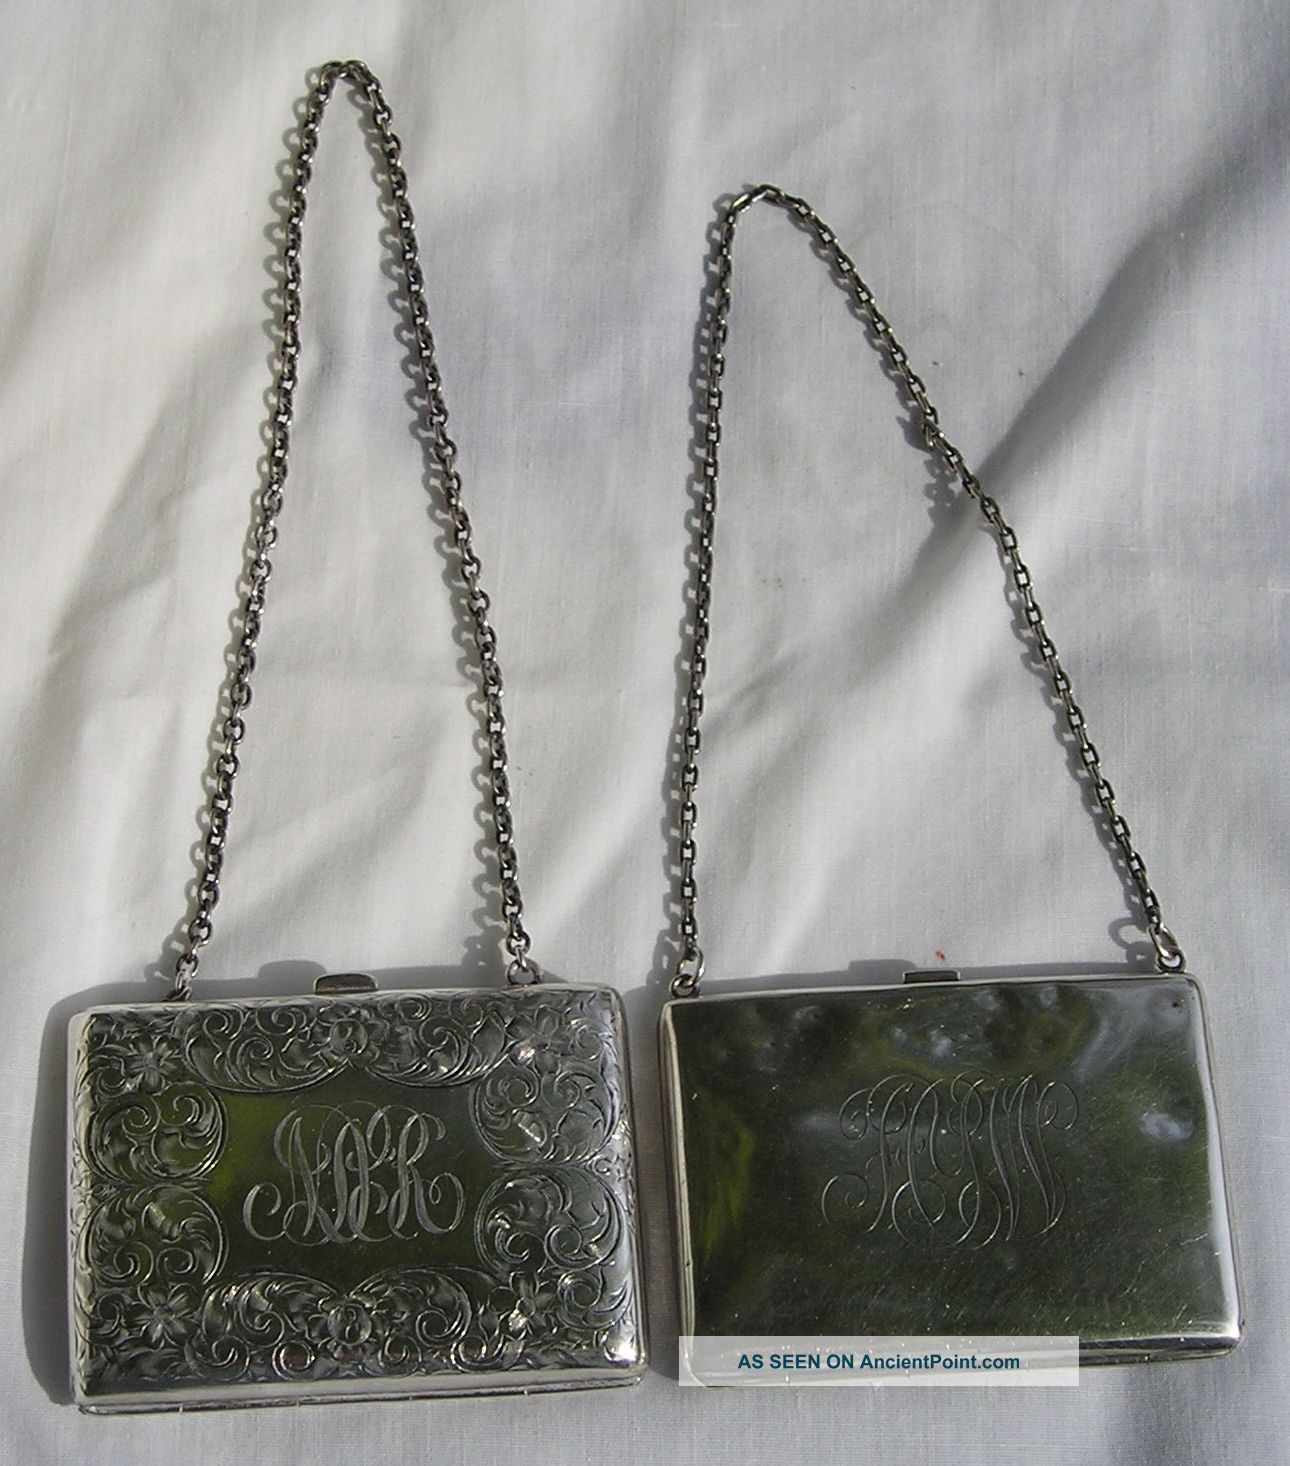 Two Antique Sterling Silver Chained Purse Card Cases Card Cases photo